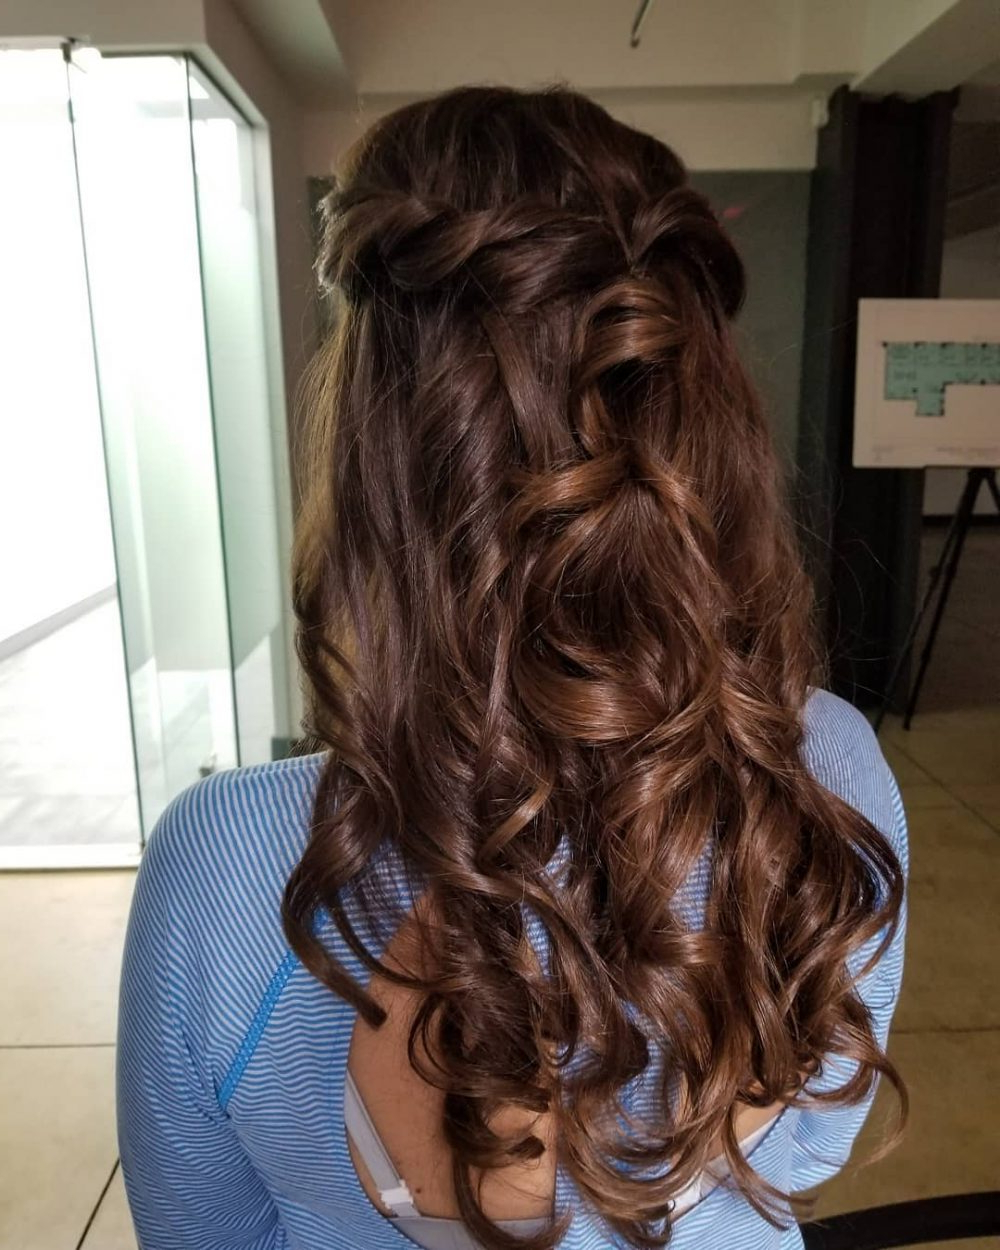 50 Party Hairstyles That Are Fun & Chic For 2019 For Most Recent Cascading Silky Waves Hairstyles (View 7 of 20)